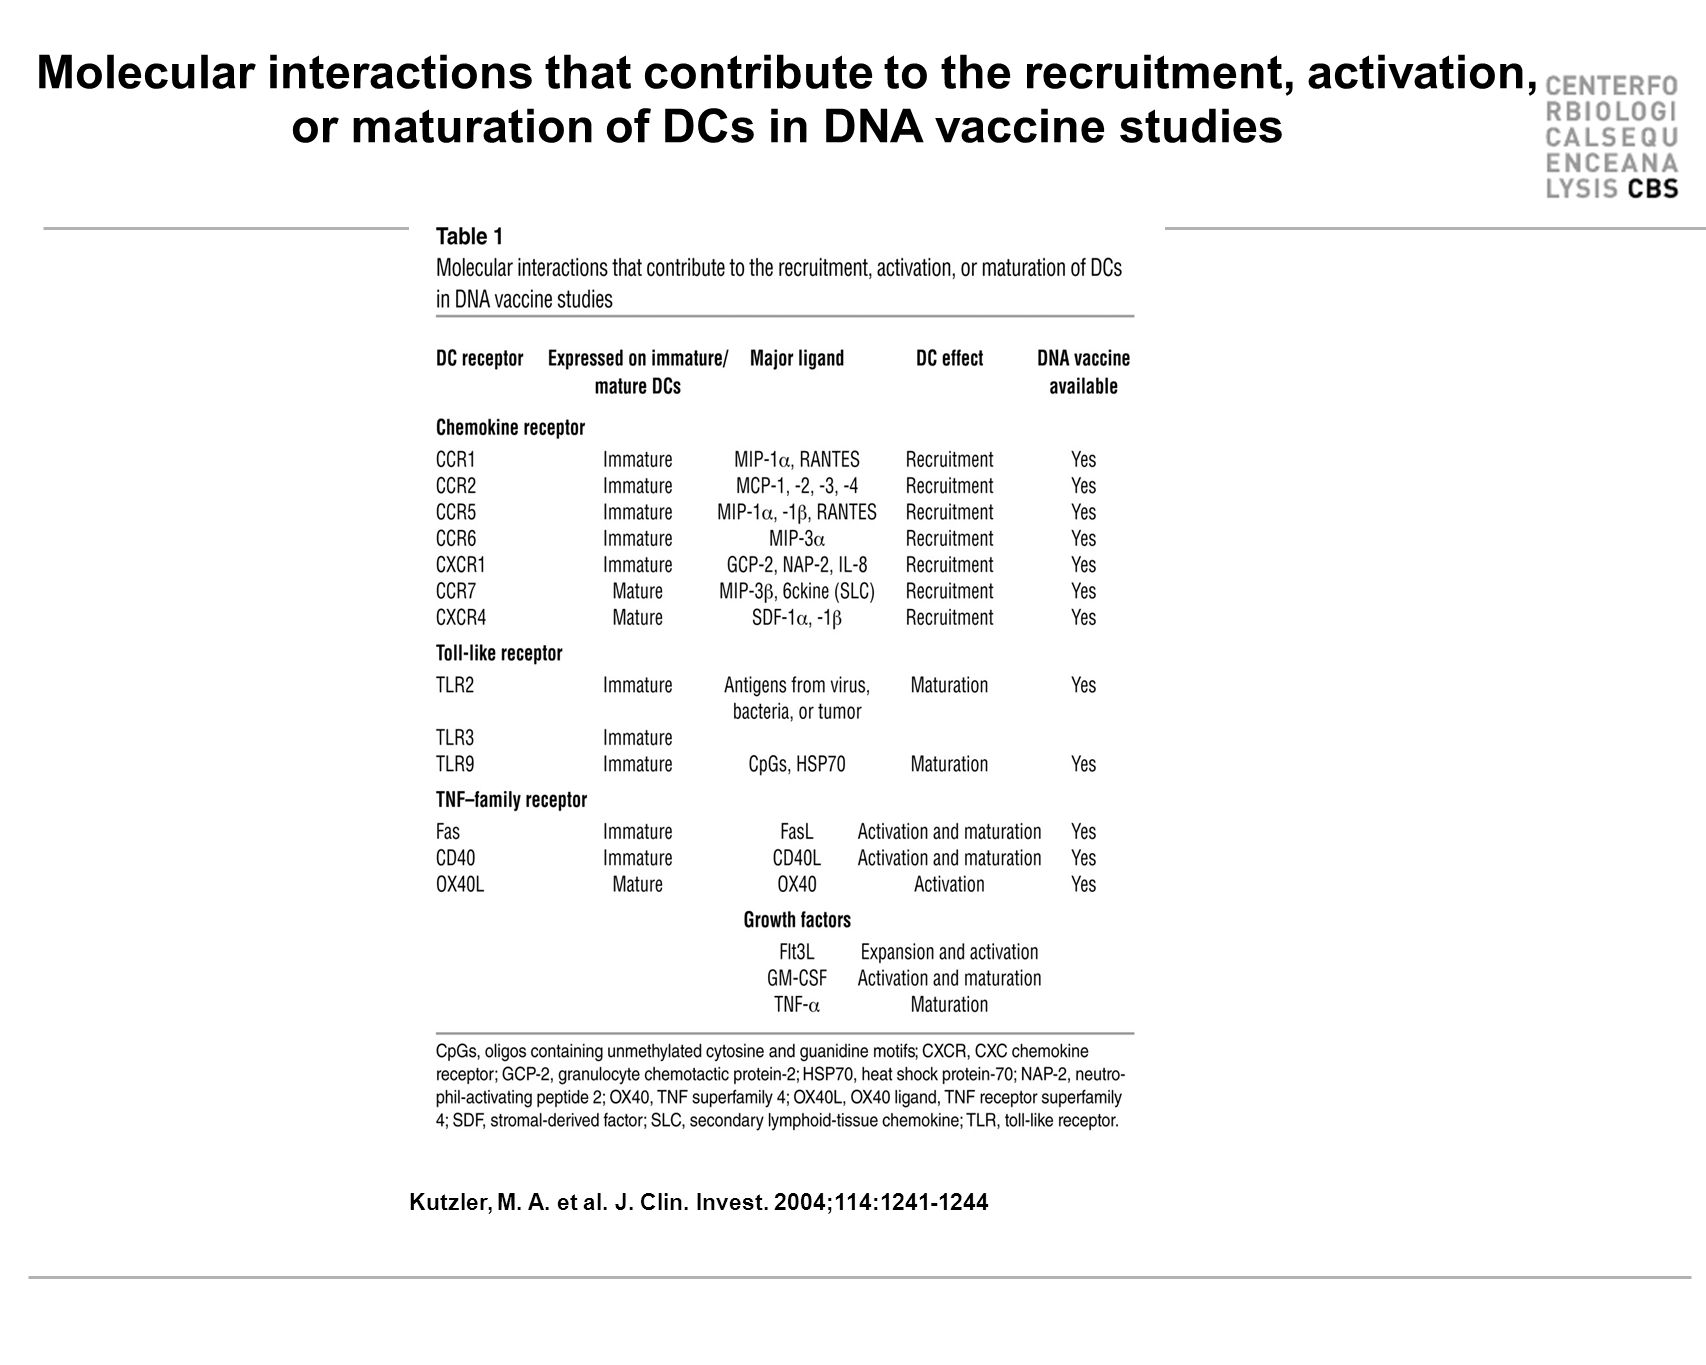 Kutzler, M. A. et al. J. Clin. Invest. 2004;114:1241-1244 Molecular interactions that contribute to the recruitment, activation, or maturation of DCs